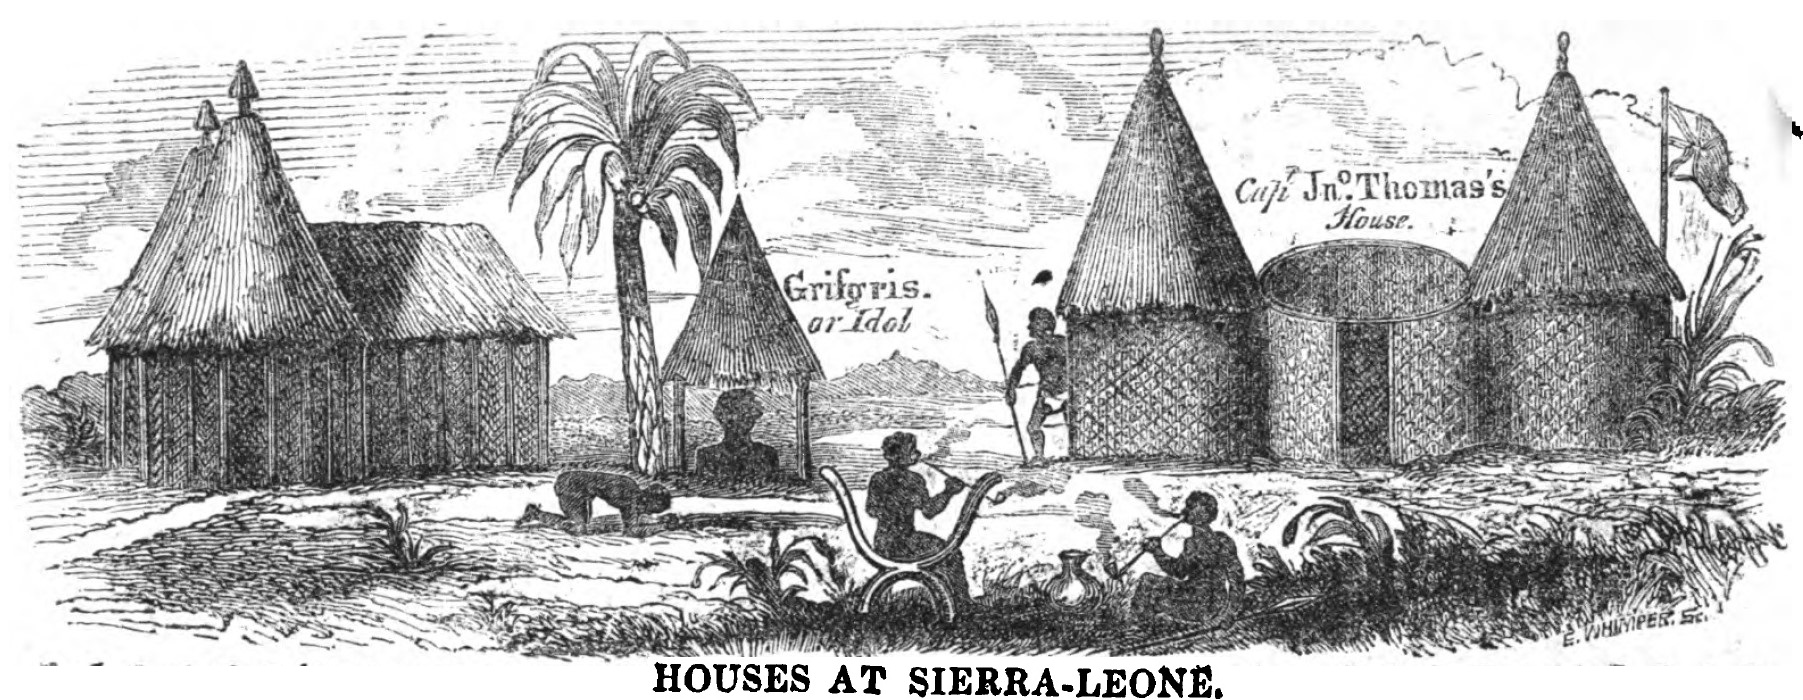 Governor_John_Thomas's_house_in_Sierra_Leone,_mid-17th_century,_artist's_recreation